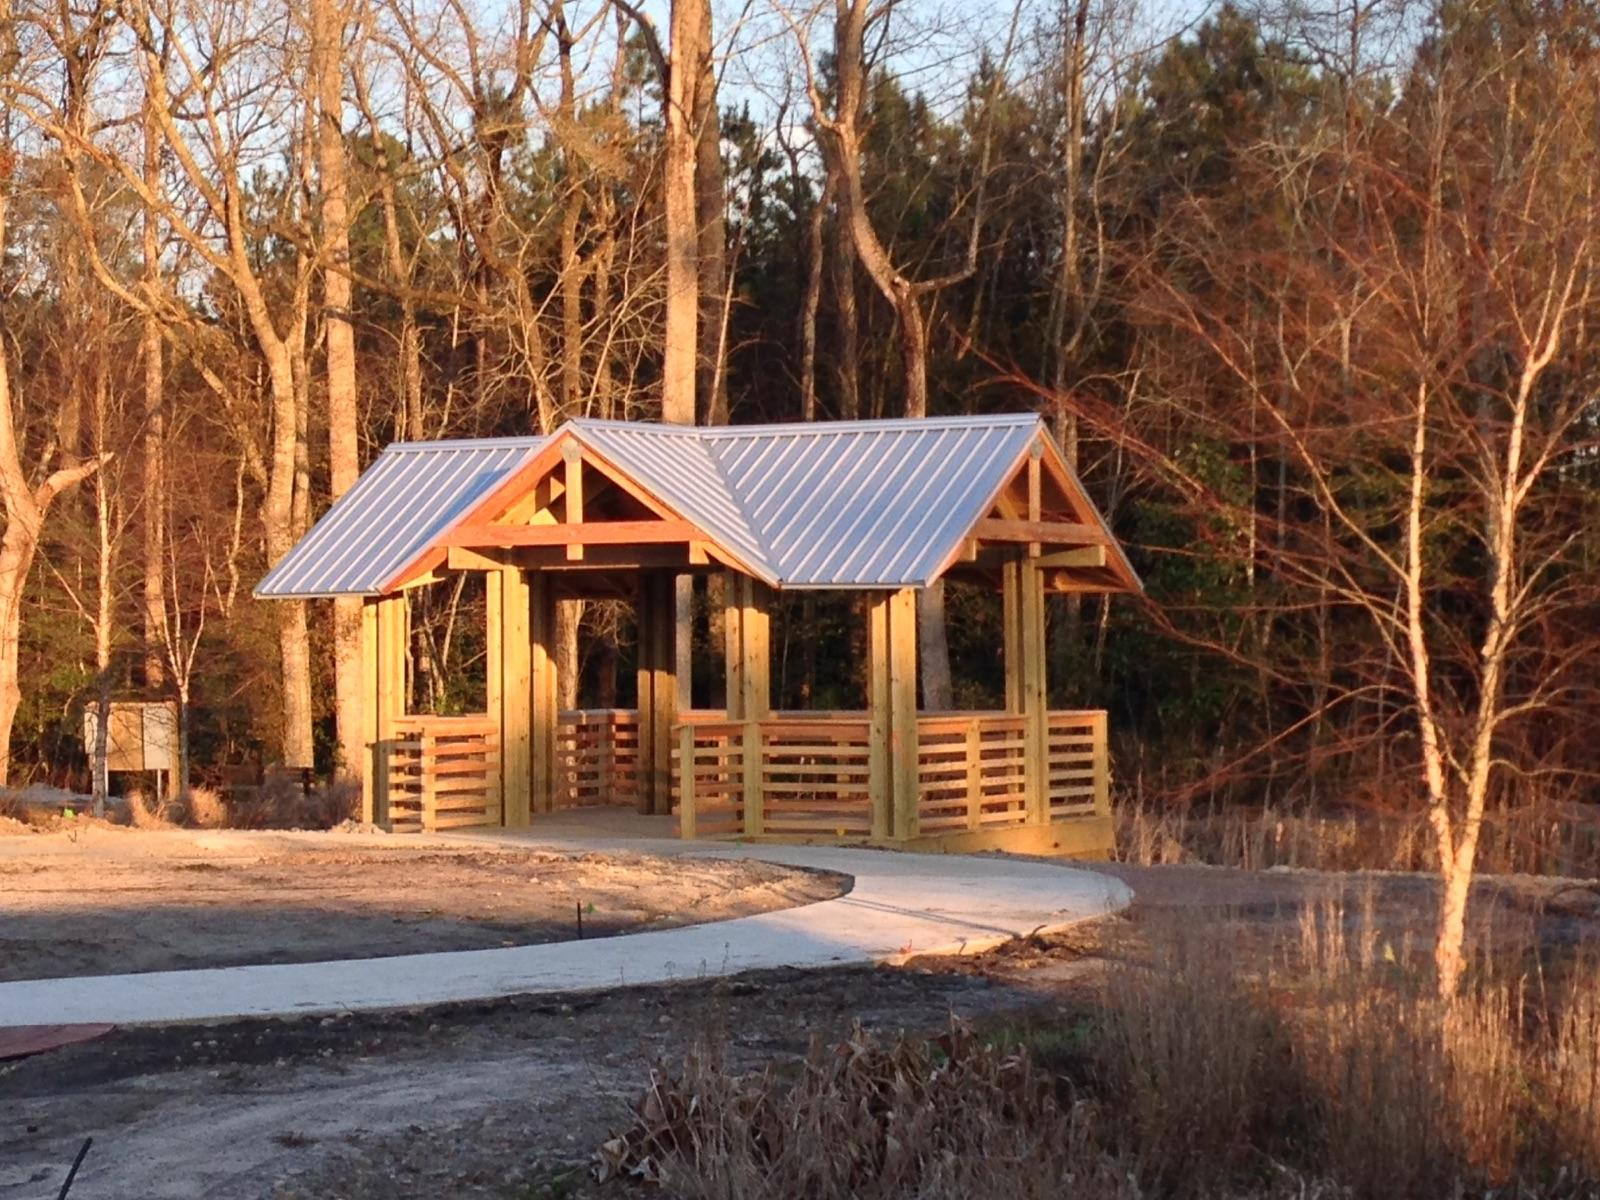 Discovery Garden Update | North Carolina Cooperative Extension